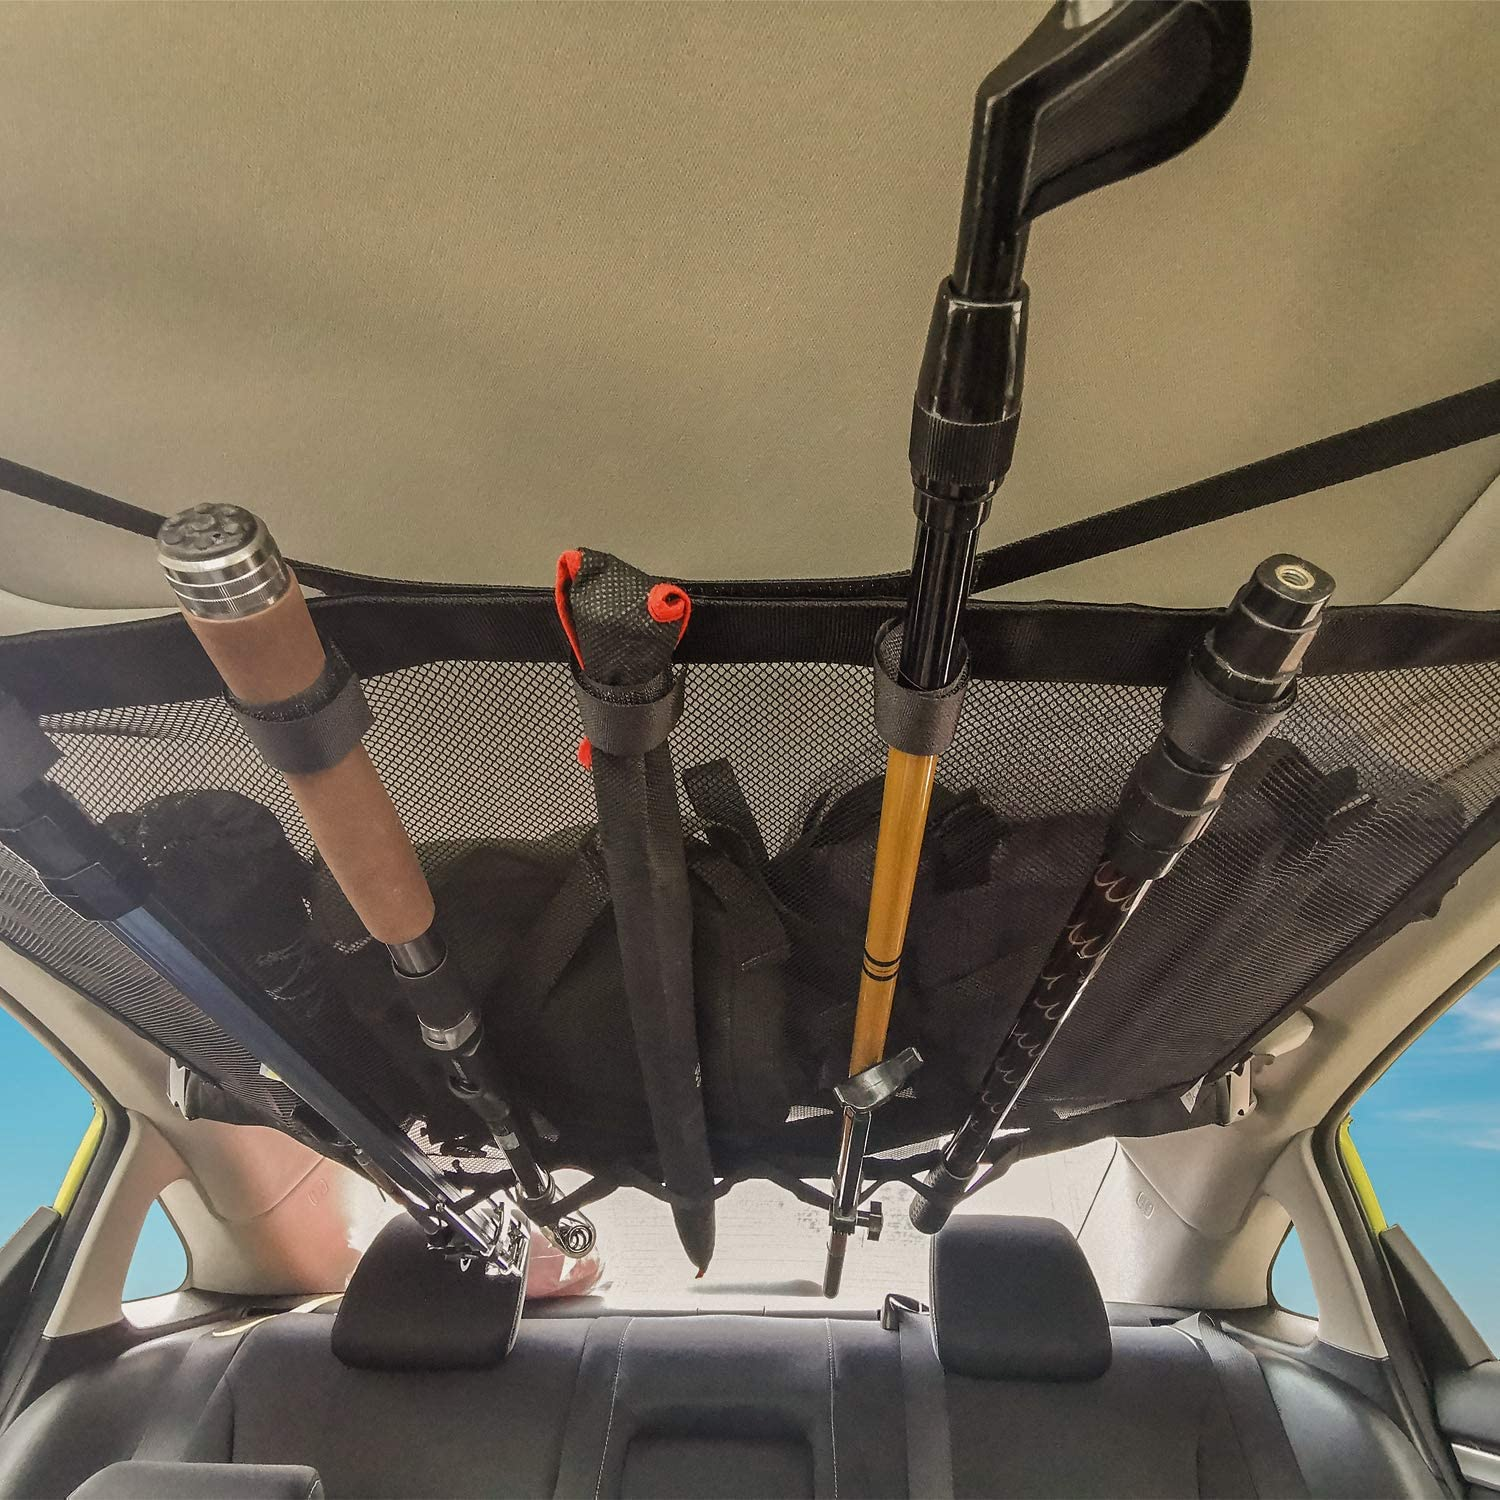 MDSTOP/SUV/Ceiling/Storage/Net/with/Fishing/Rod/Holder,/Interior/Car/Roof/Rack/Mesh/Storage/Rack/Polyester/Mesh/Sundries/Organizers/for/Long/Trave